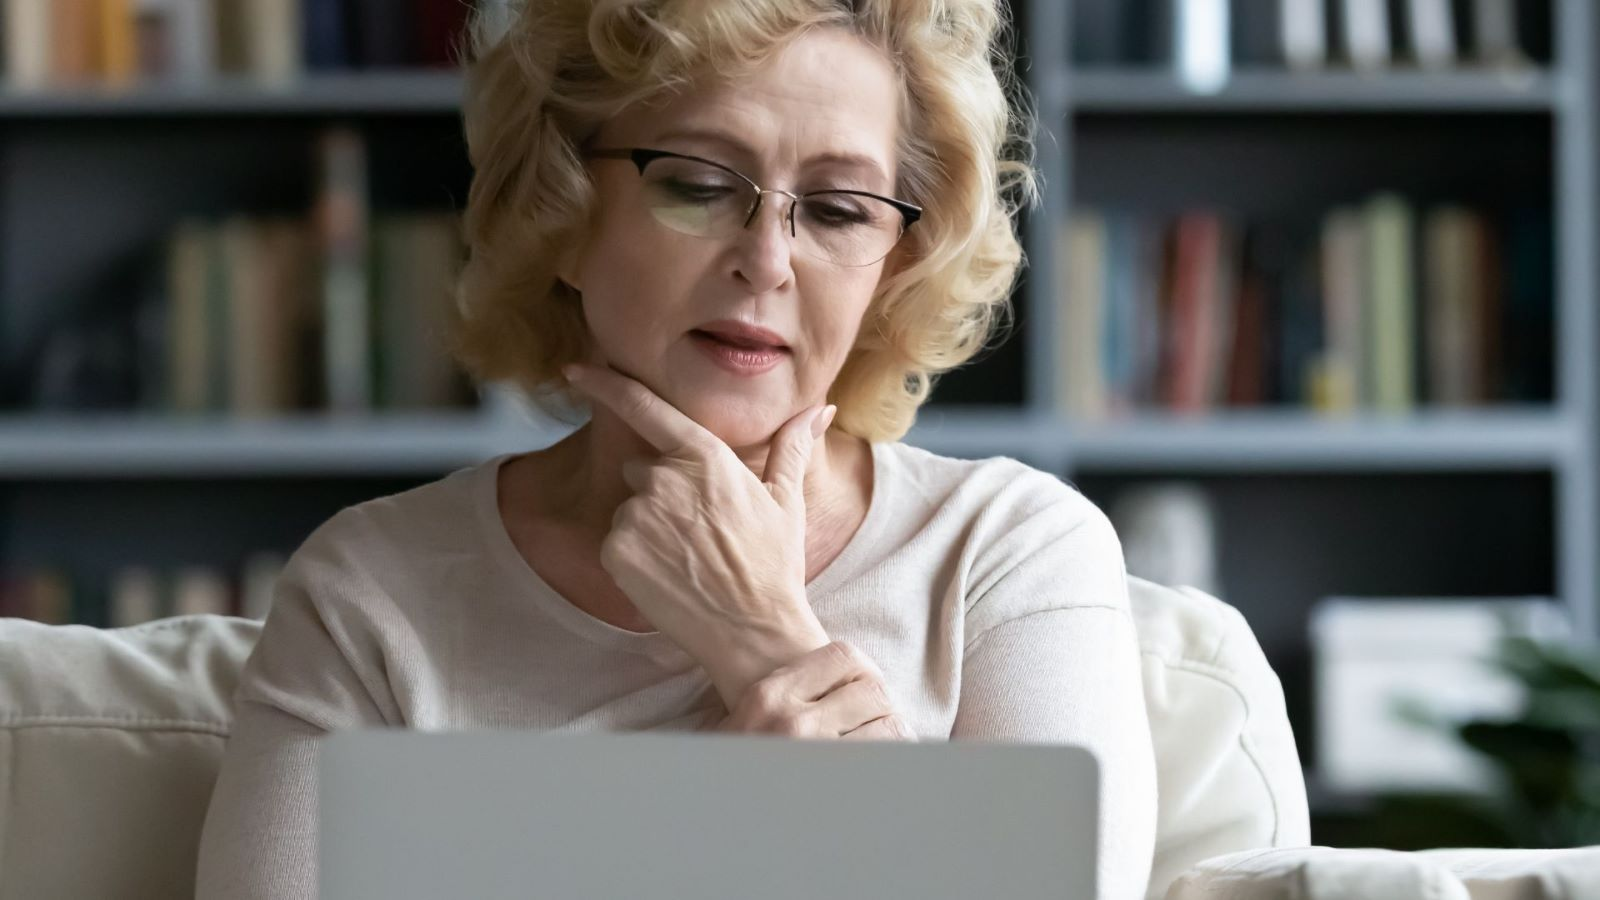 Senior woman looking contemplative while reading email